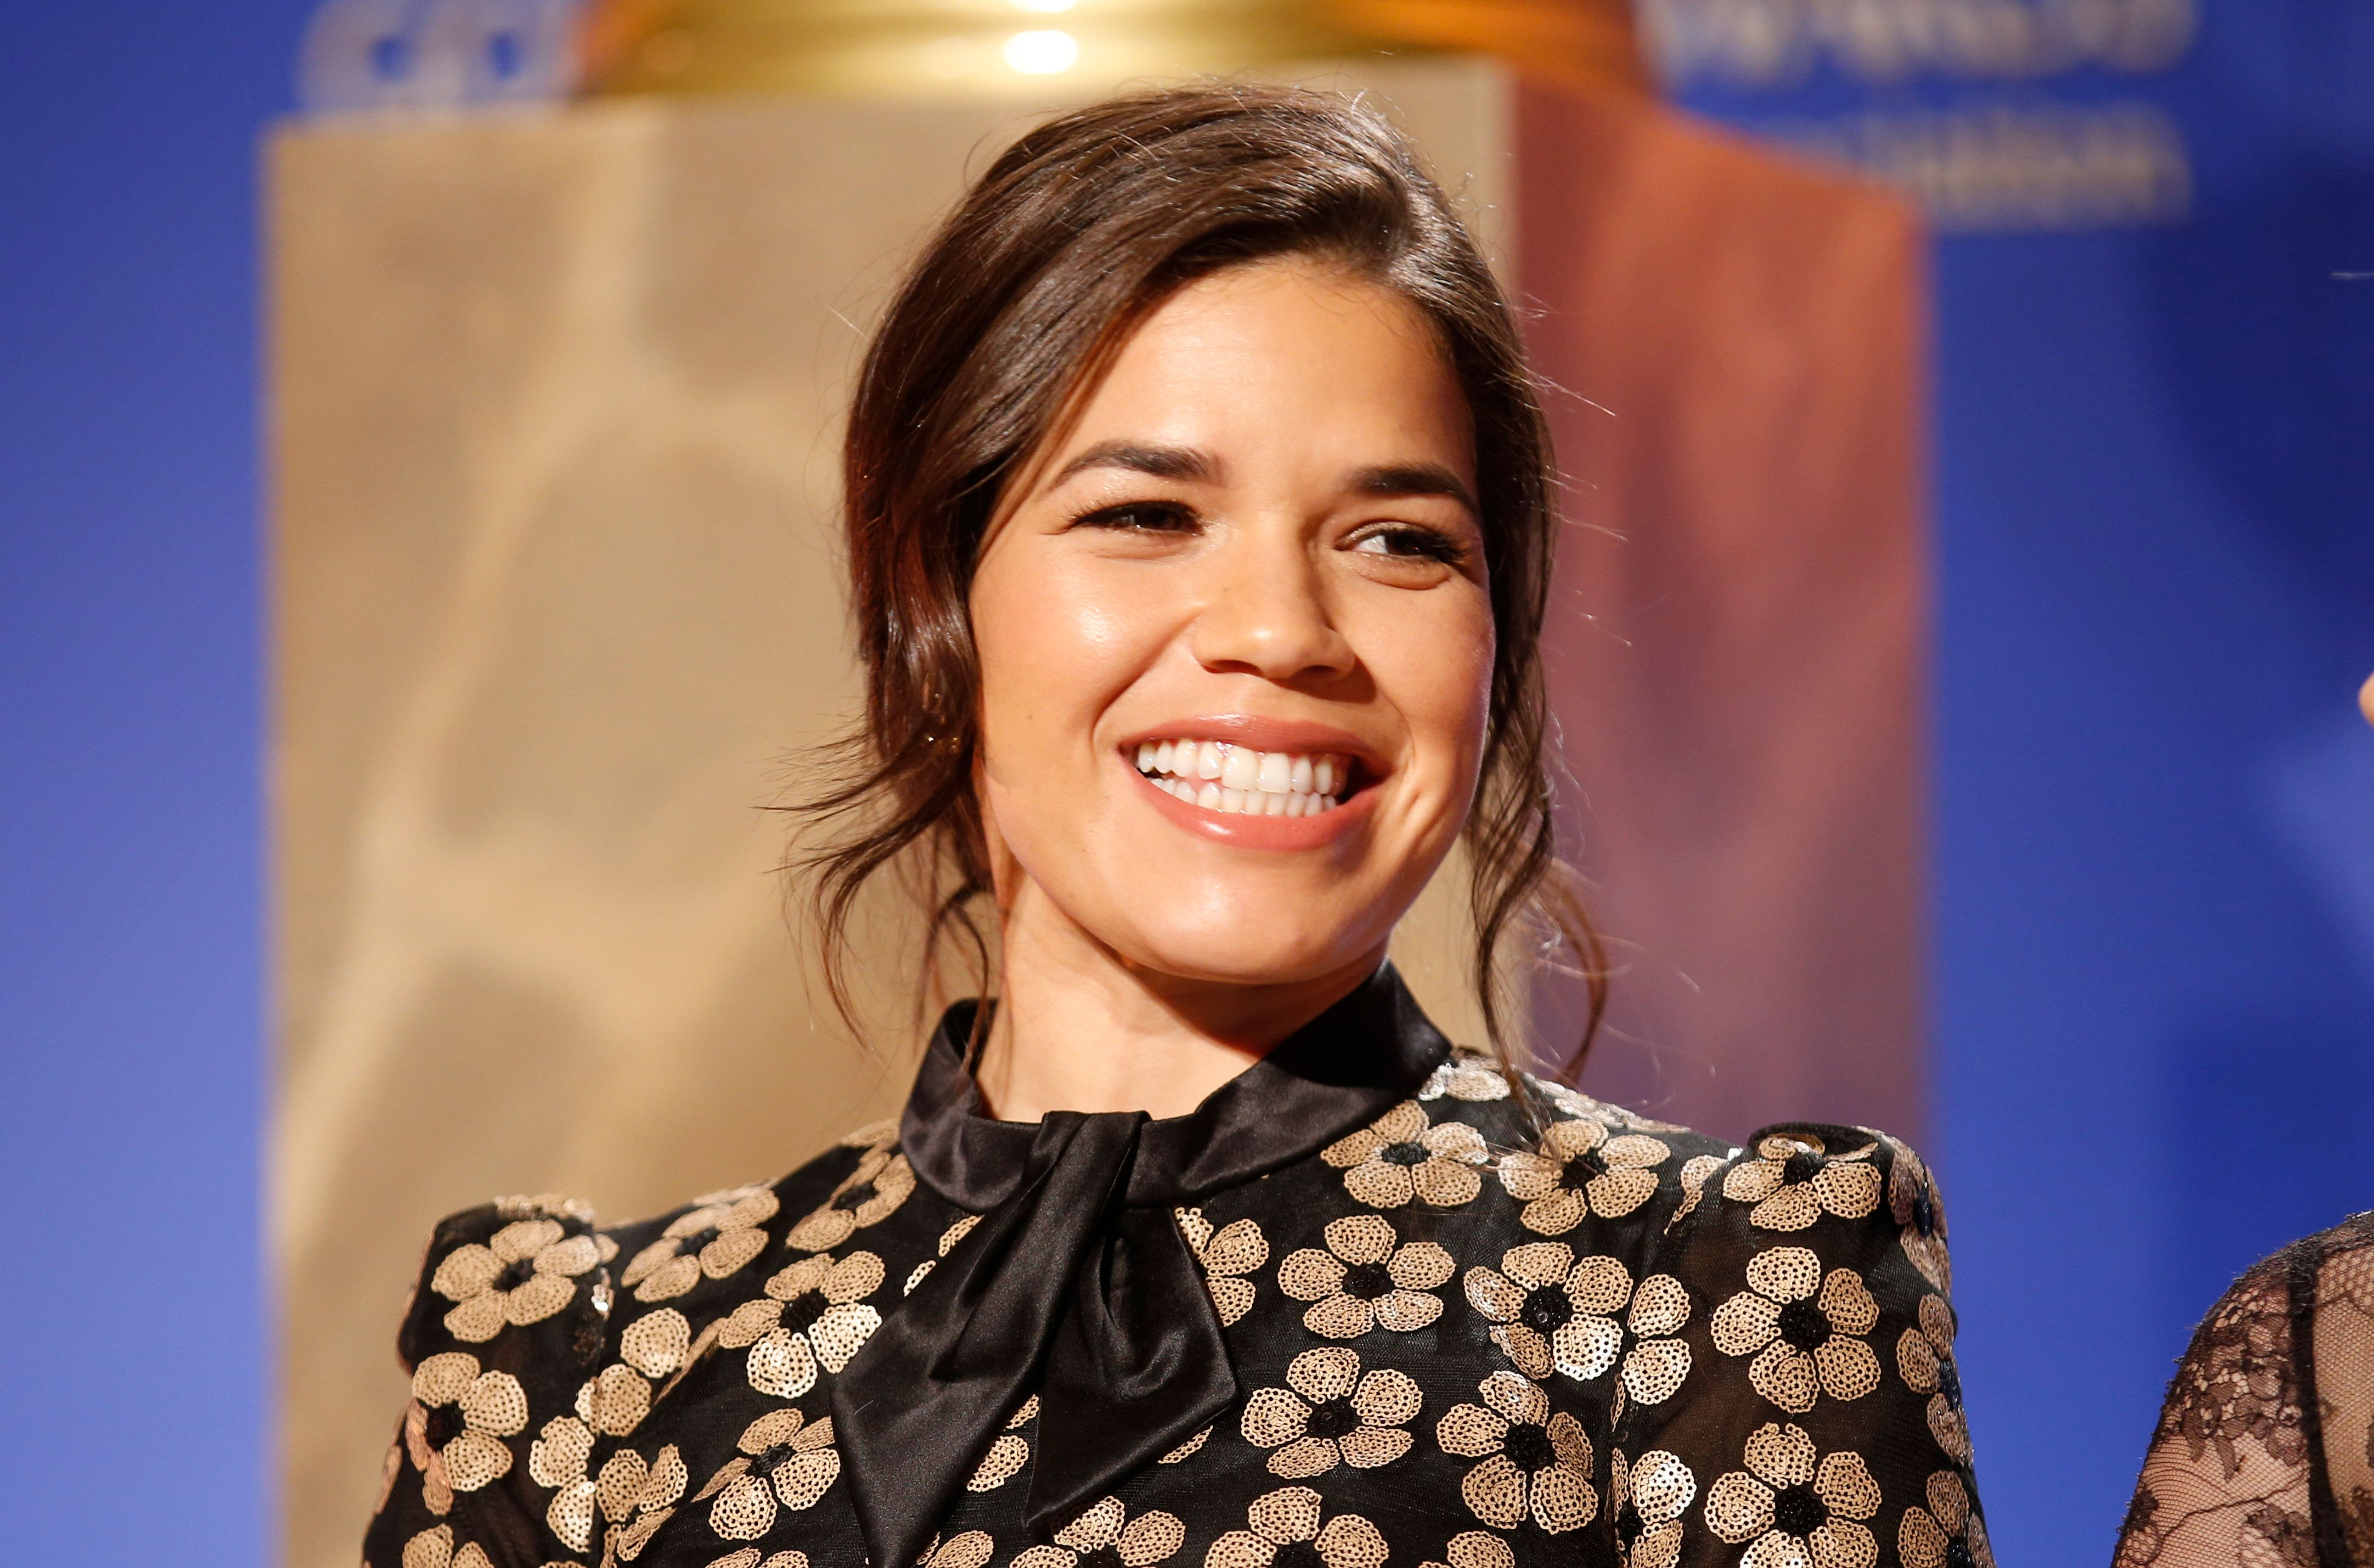 Actress America Ferrera sits on stage during nominations for the 73rd annual Golden Globe Awards in Beverly Hills, California December 10, 2015. The awards will be presented on January 10, 2016. REUTERS/Danny Moloshok